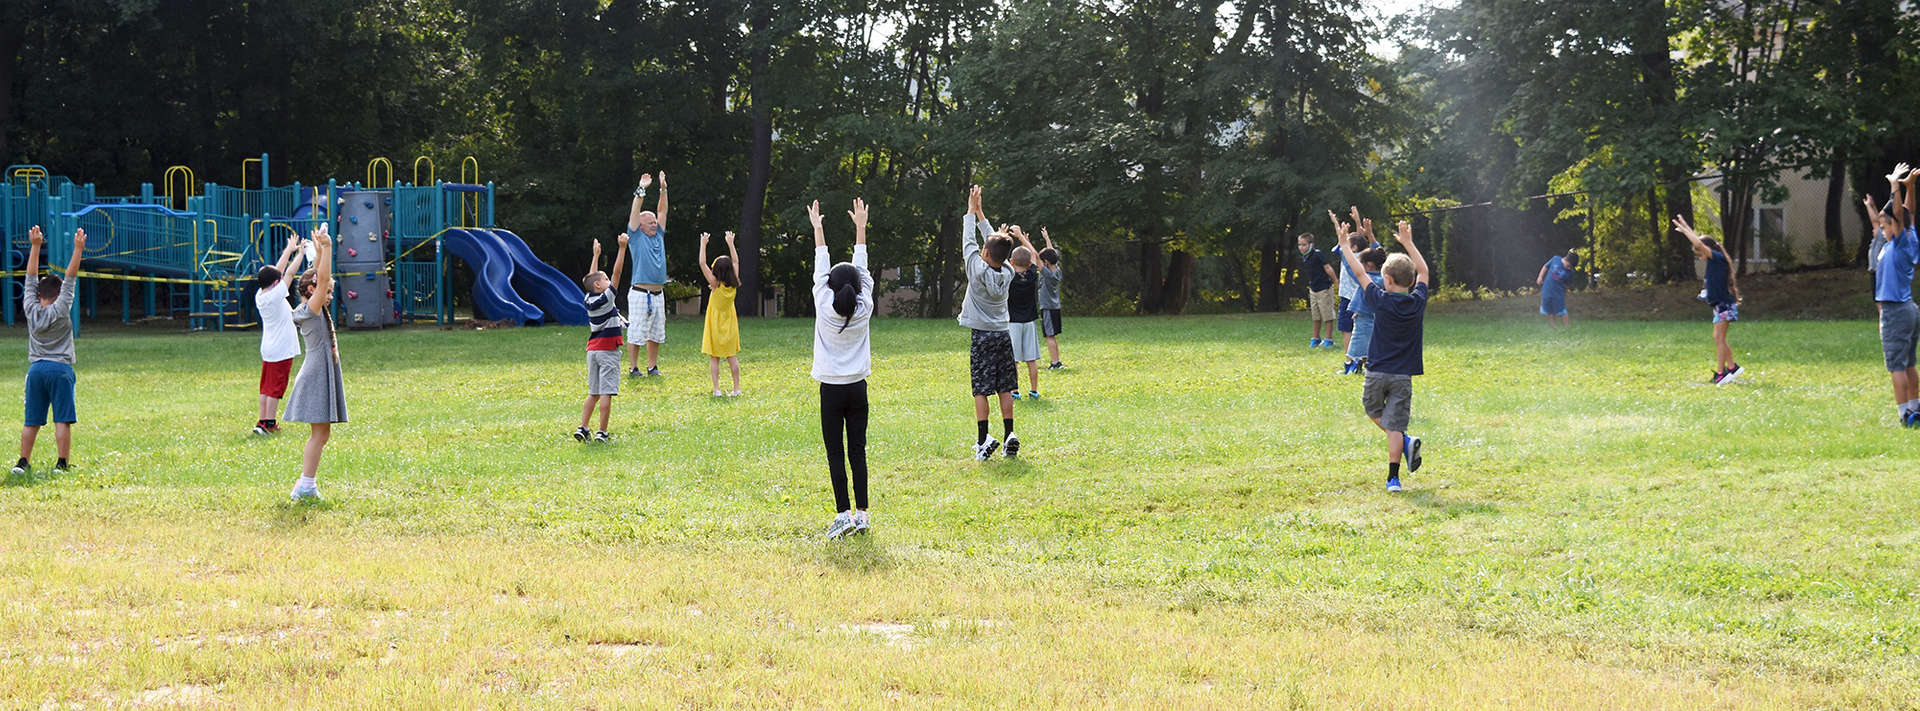 group of PE students on field doing stretches